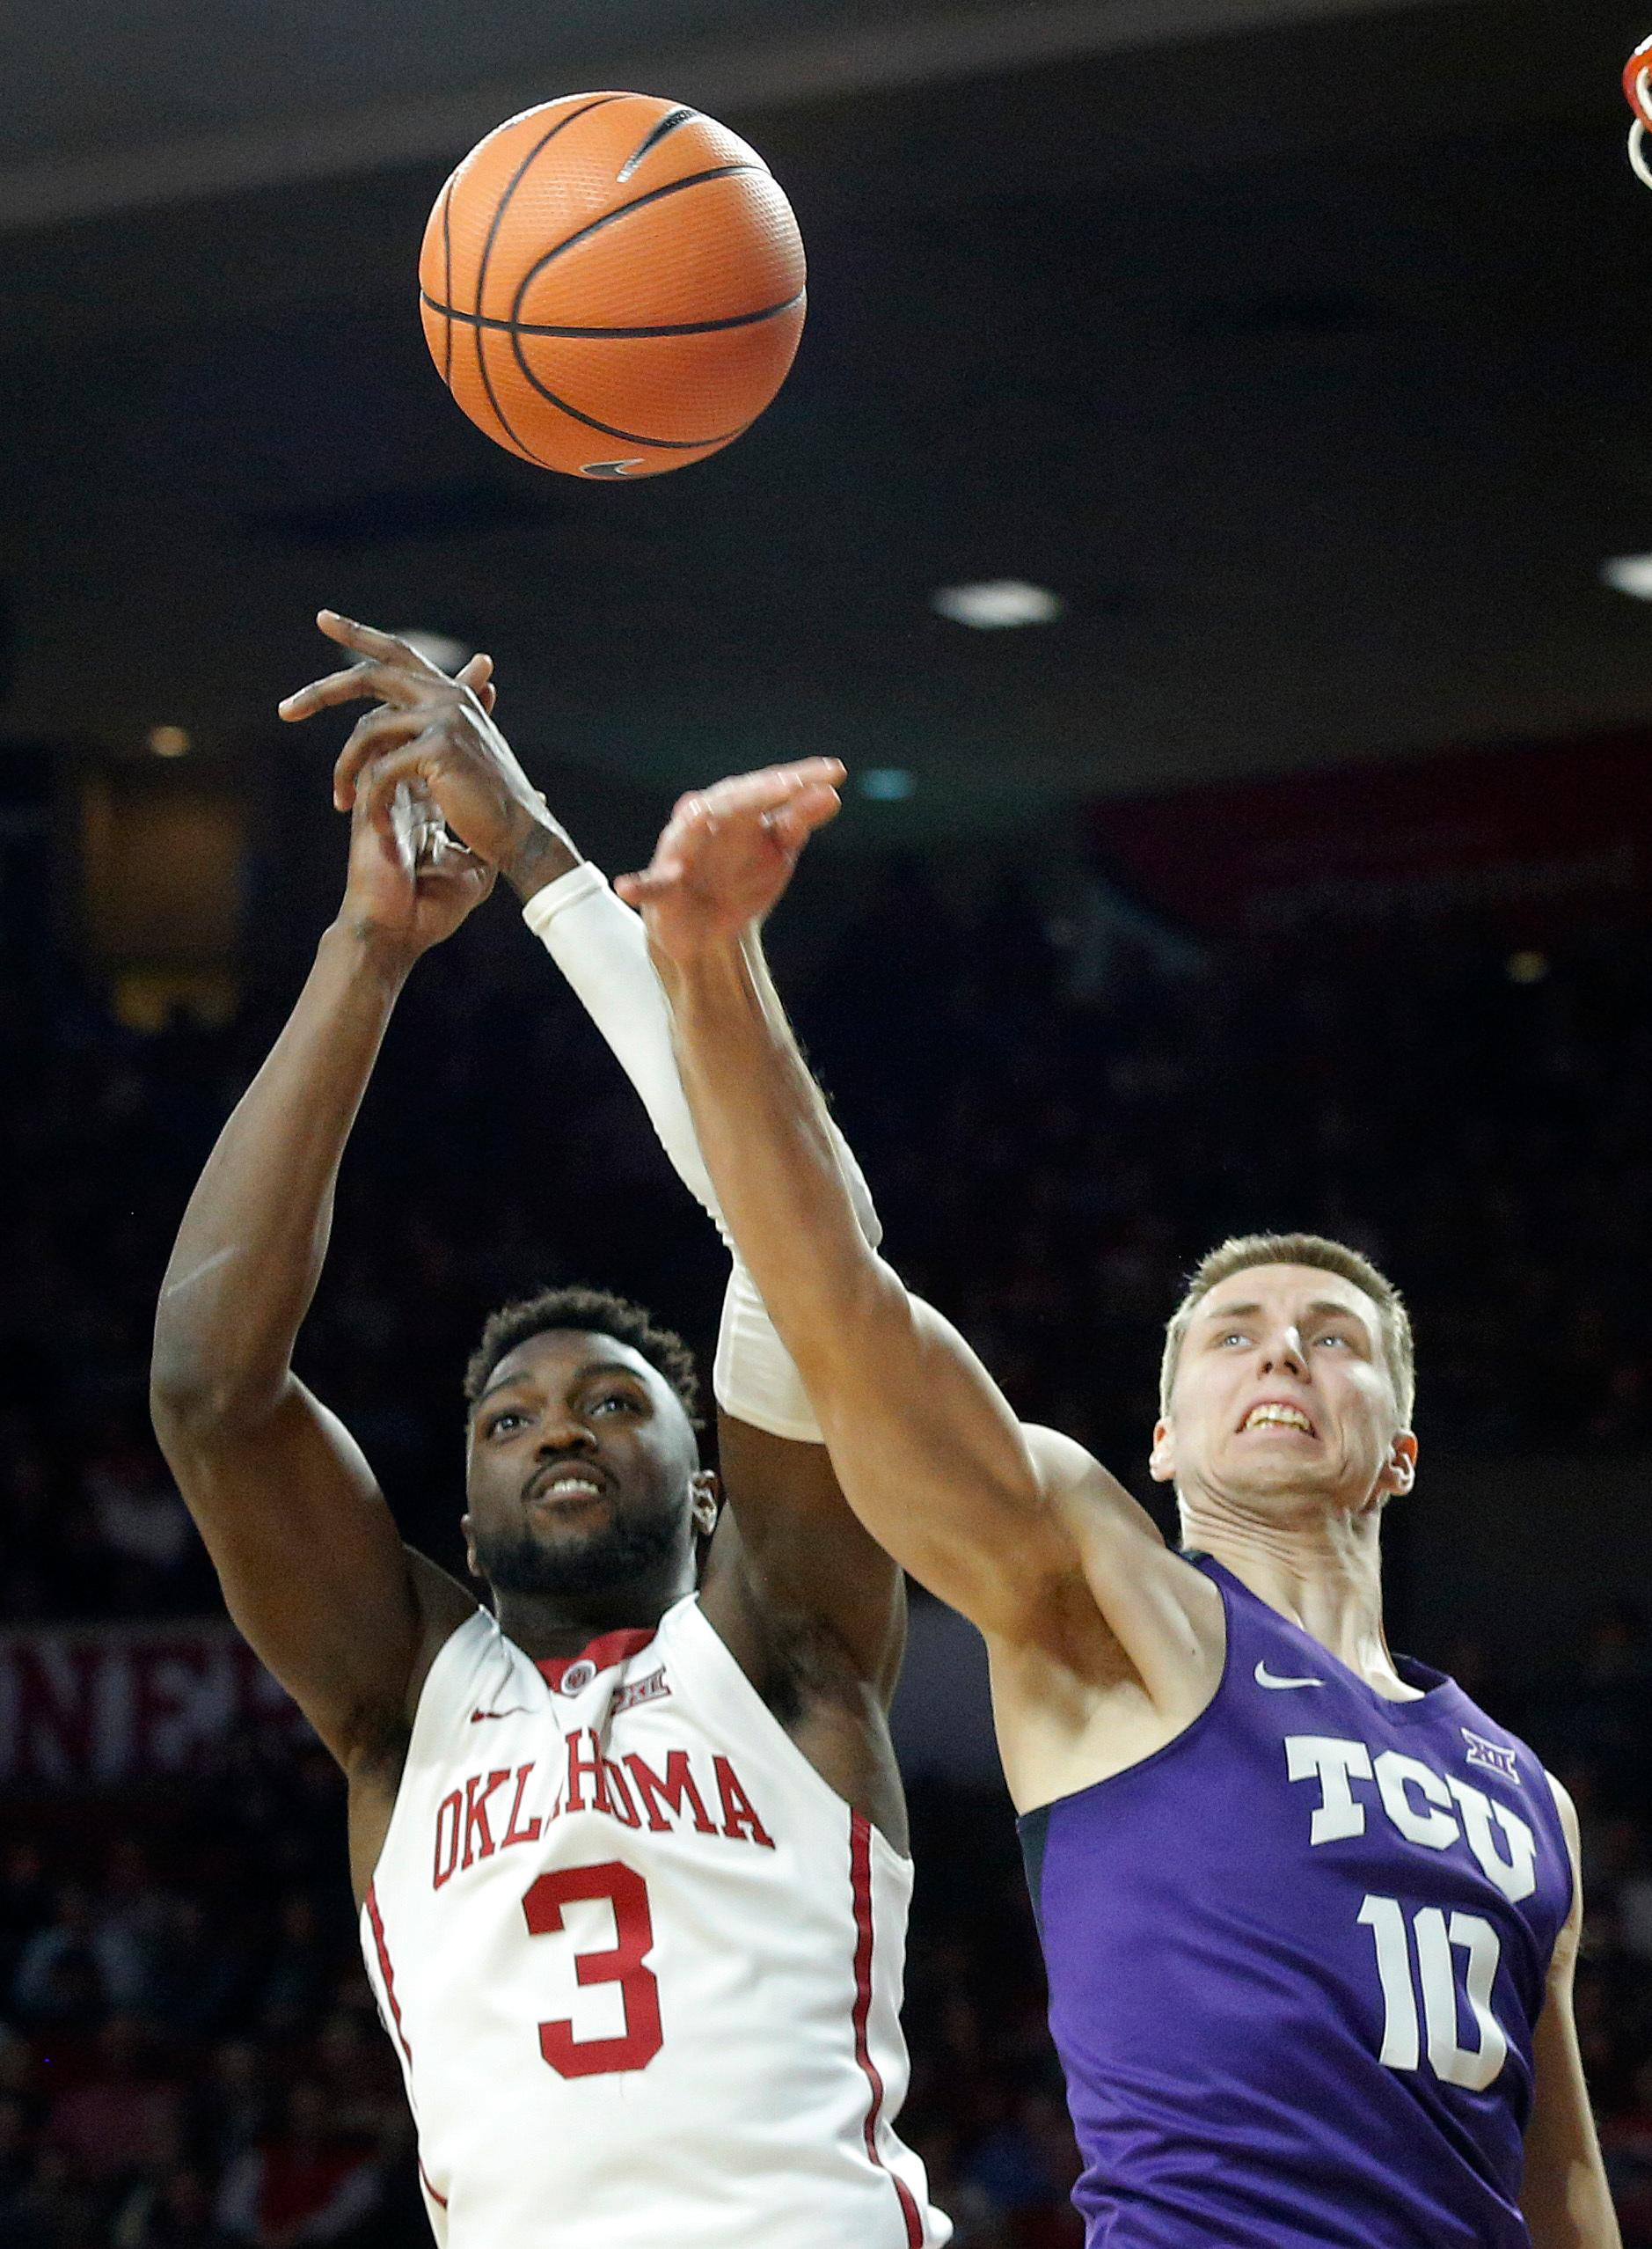 Oklahoma's Khadeem Lattin (3) and TCU's Vladimir Brodziansky (10) fight for the rebound during the first half of an NCAA college basketball game in Norman, Okla., Saturday, Jan. 13, 2018. (AP Photo/Garett Fisbeck)